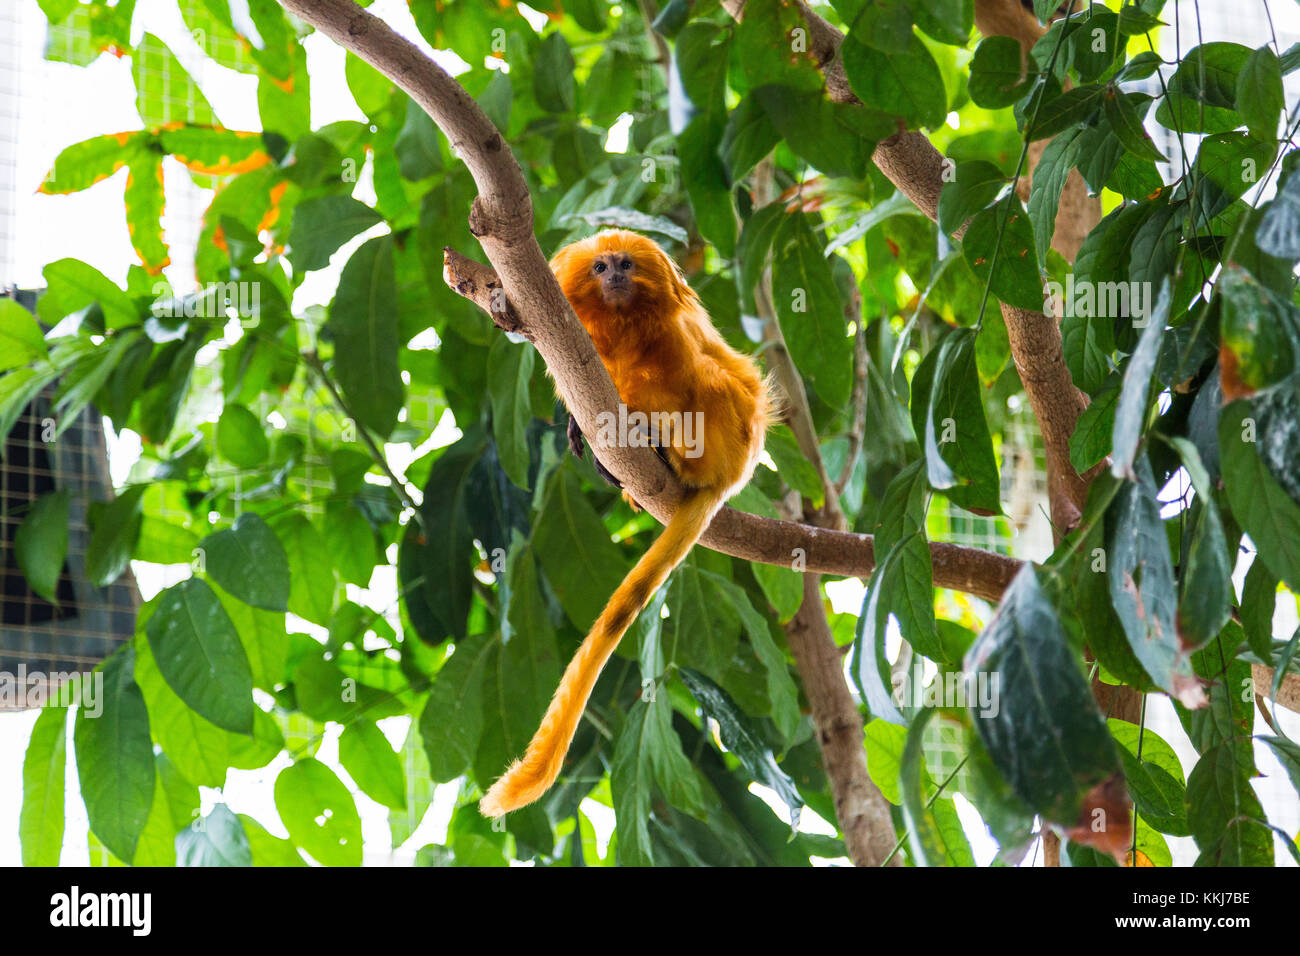 Golden lion tamarin monkey on a tree in Maryland National Aquarium, Baltimore, Maryland, USA - Stock Image